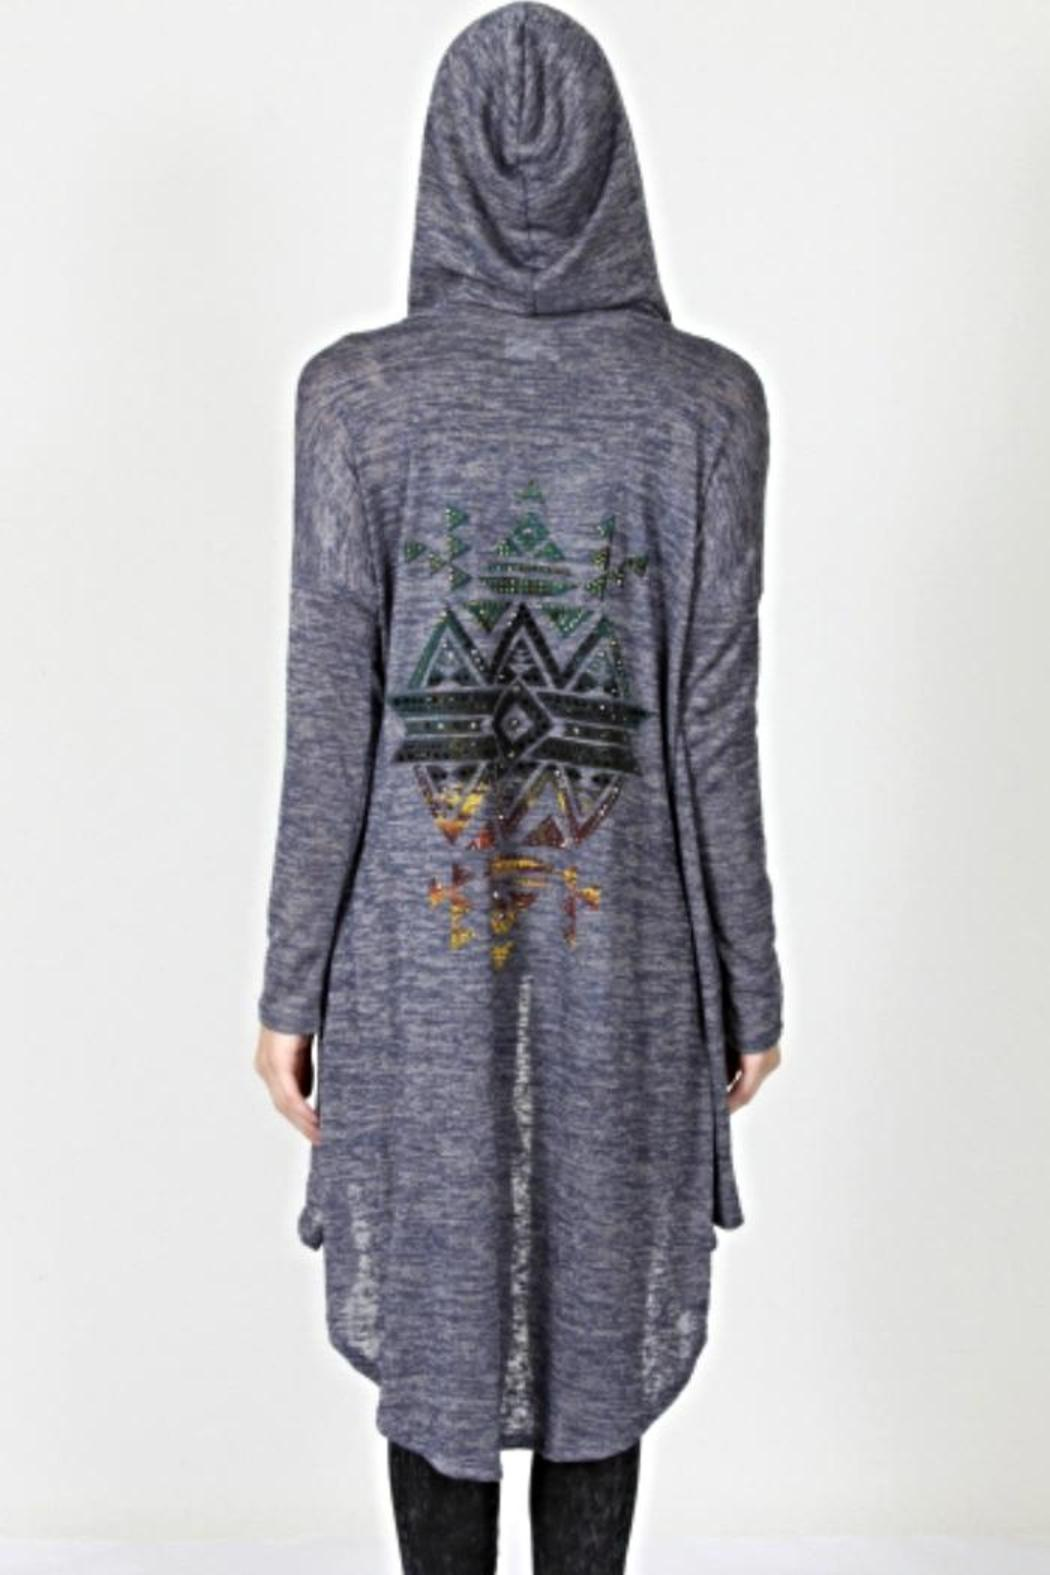 Hooded Aztec Cardigan from Colorado by Bling! — Shoptiques